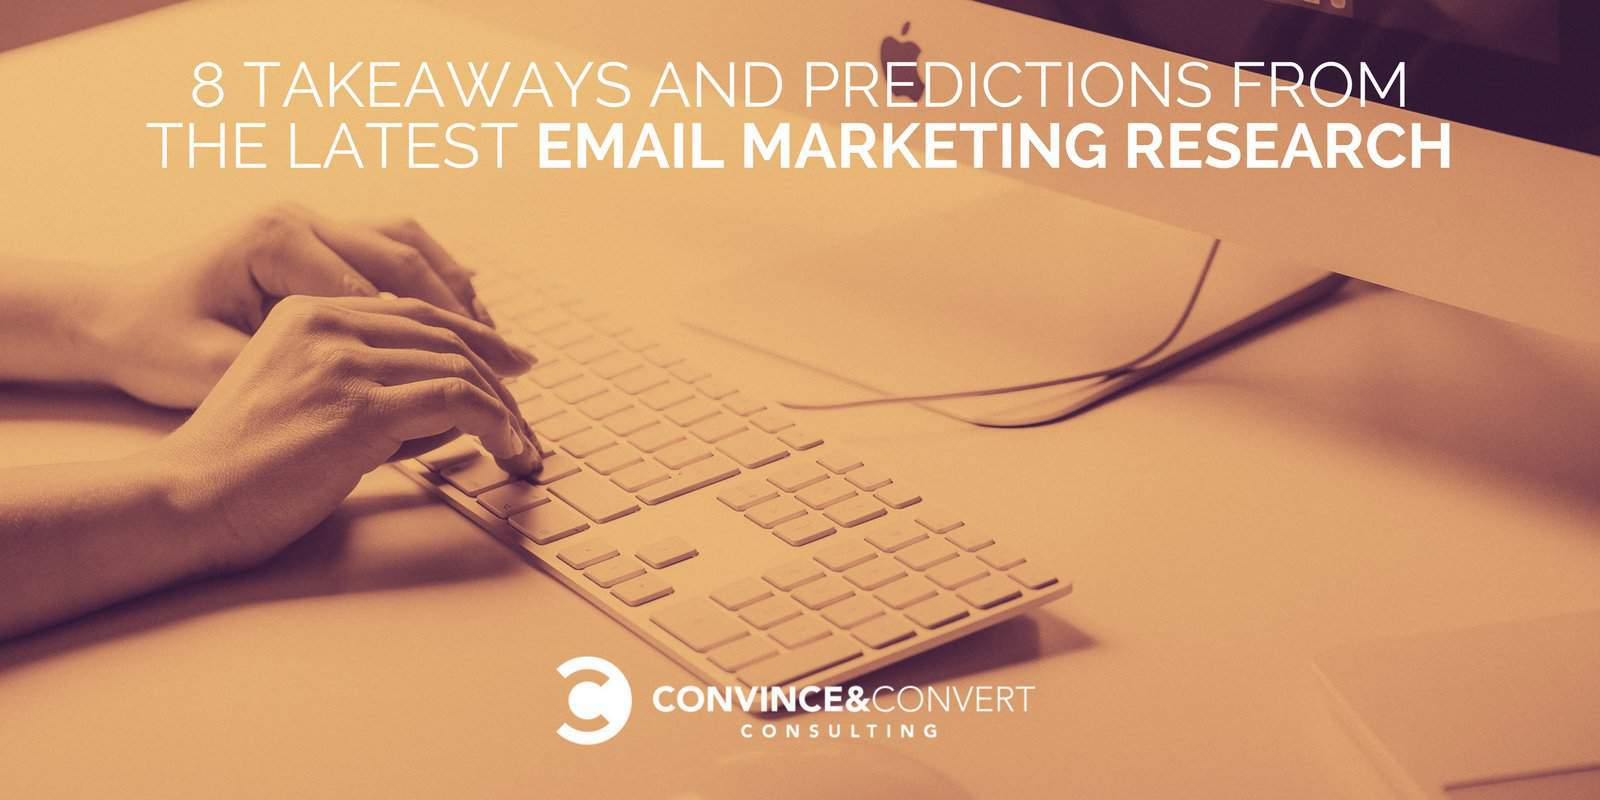 8 Takeaways and Predictions from the Latest Email Marketing Research